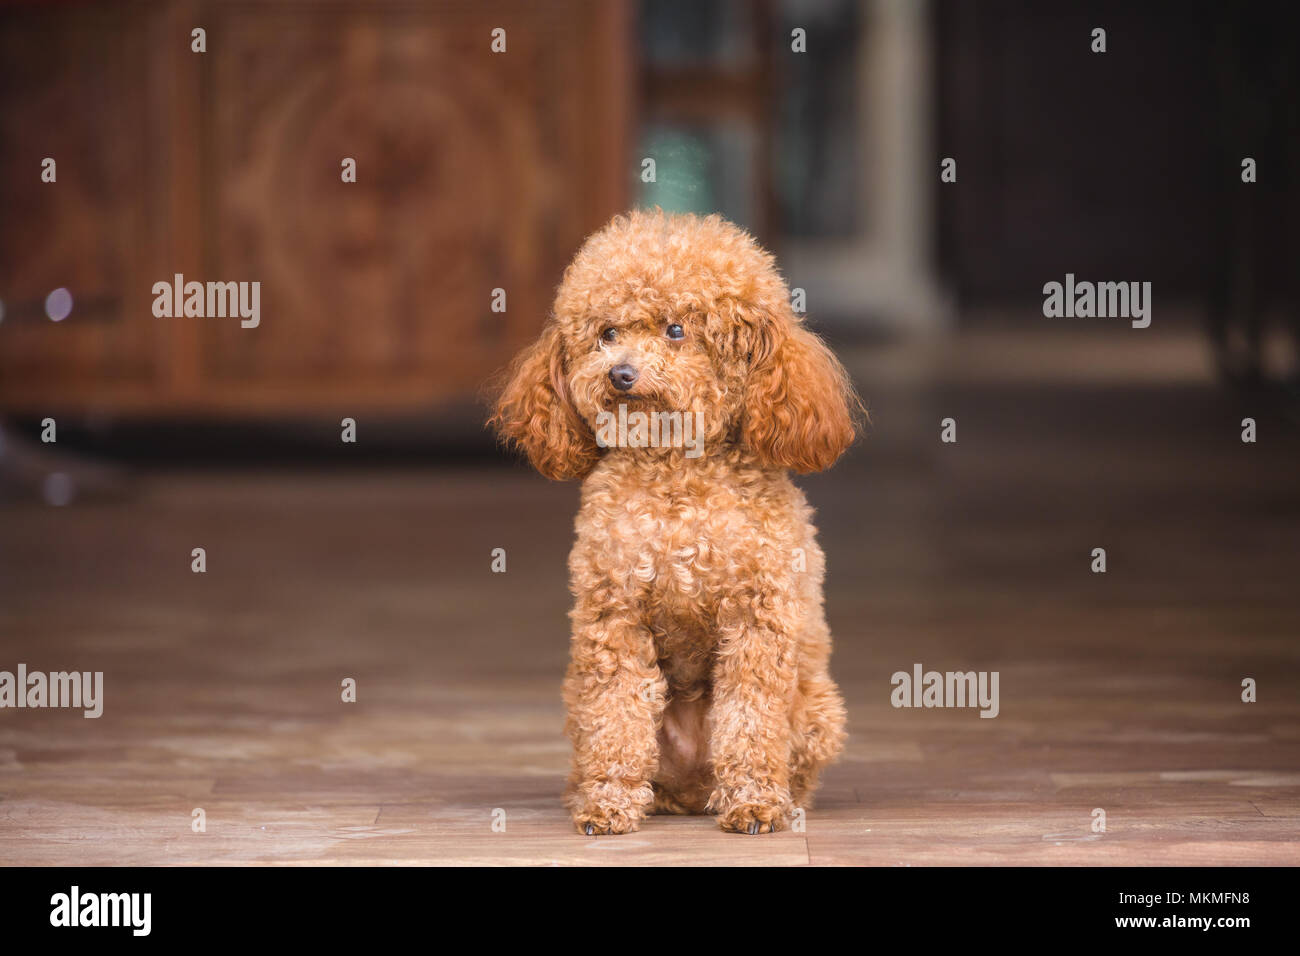 cute toy poodle standing inside house Stock Photo